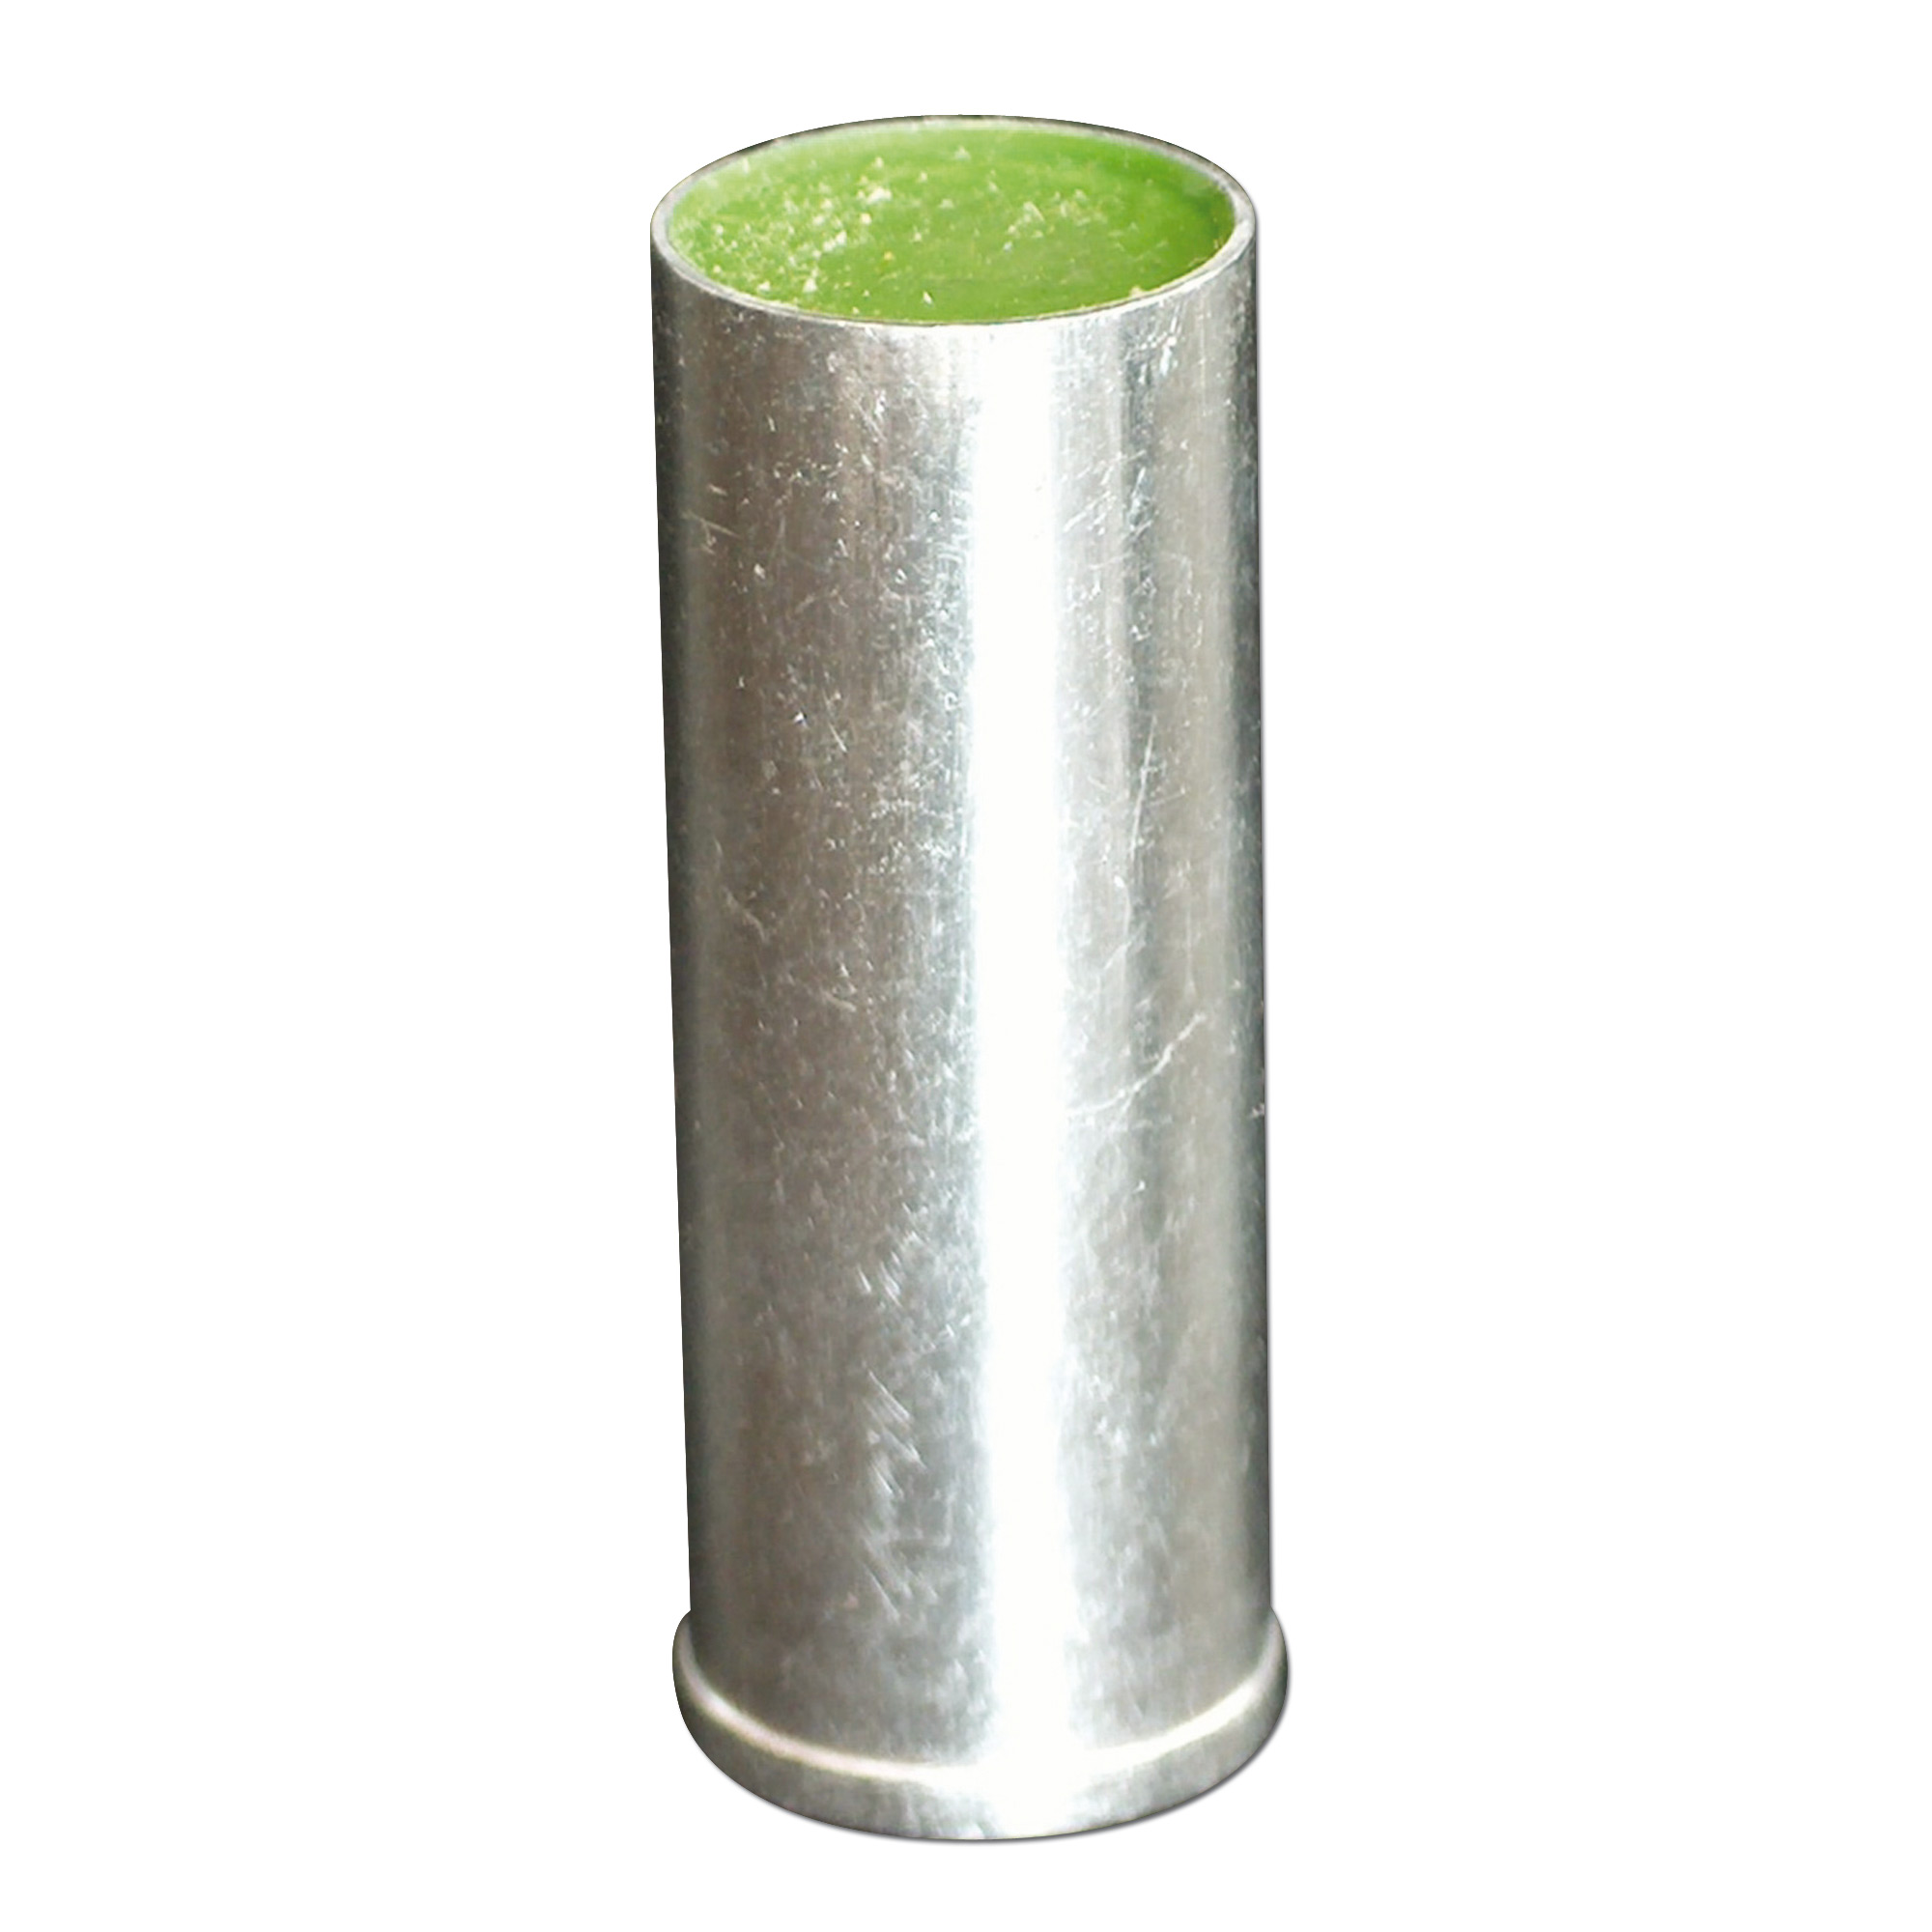 Nico Replacement Cartridges green